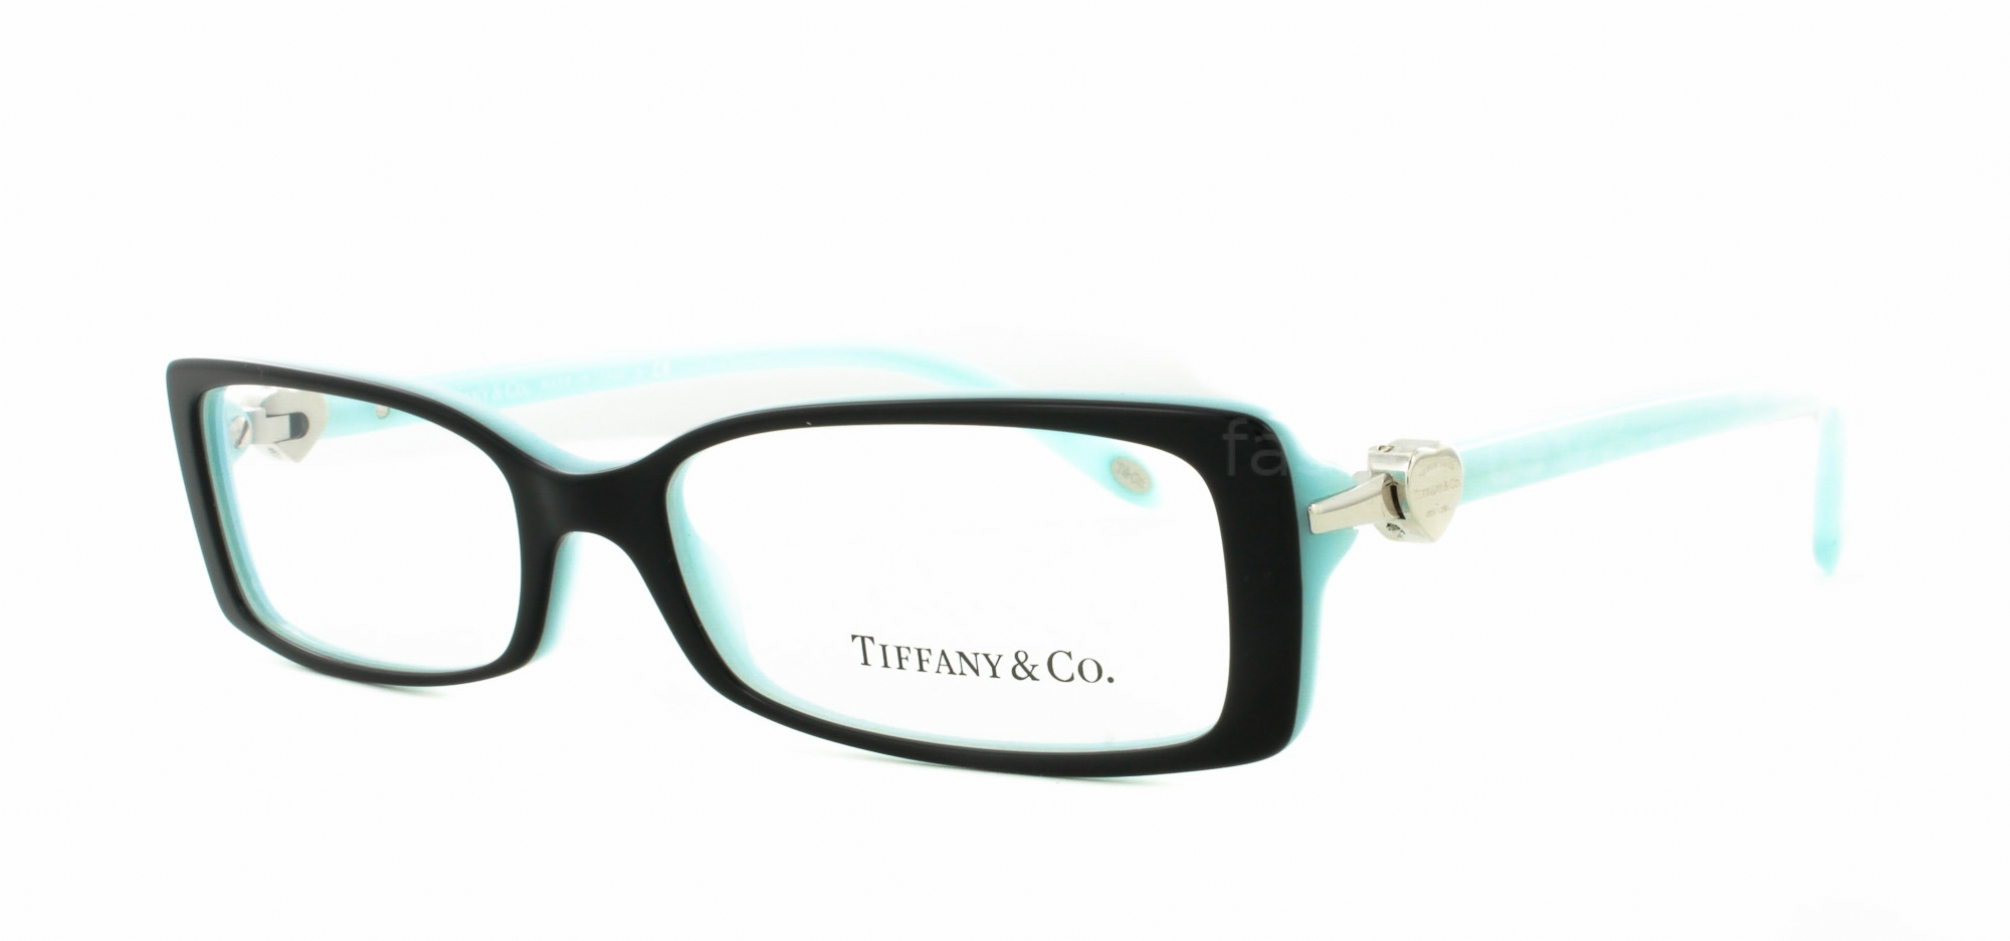 TIFFANY 2035 EYEGLASSES at AtoZEyewear.com